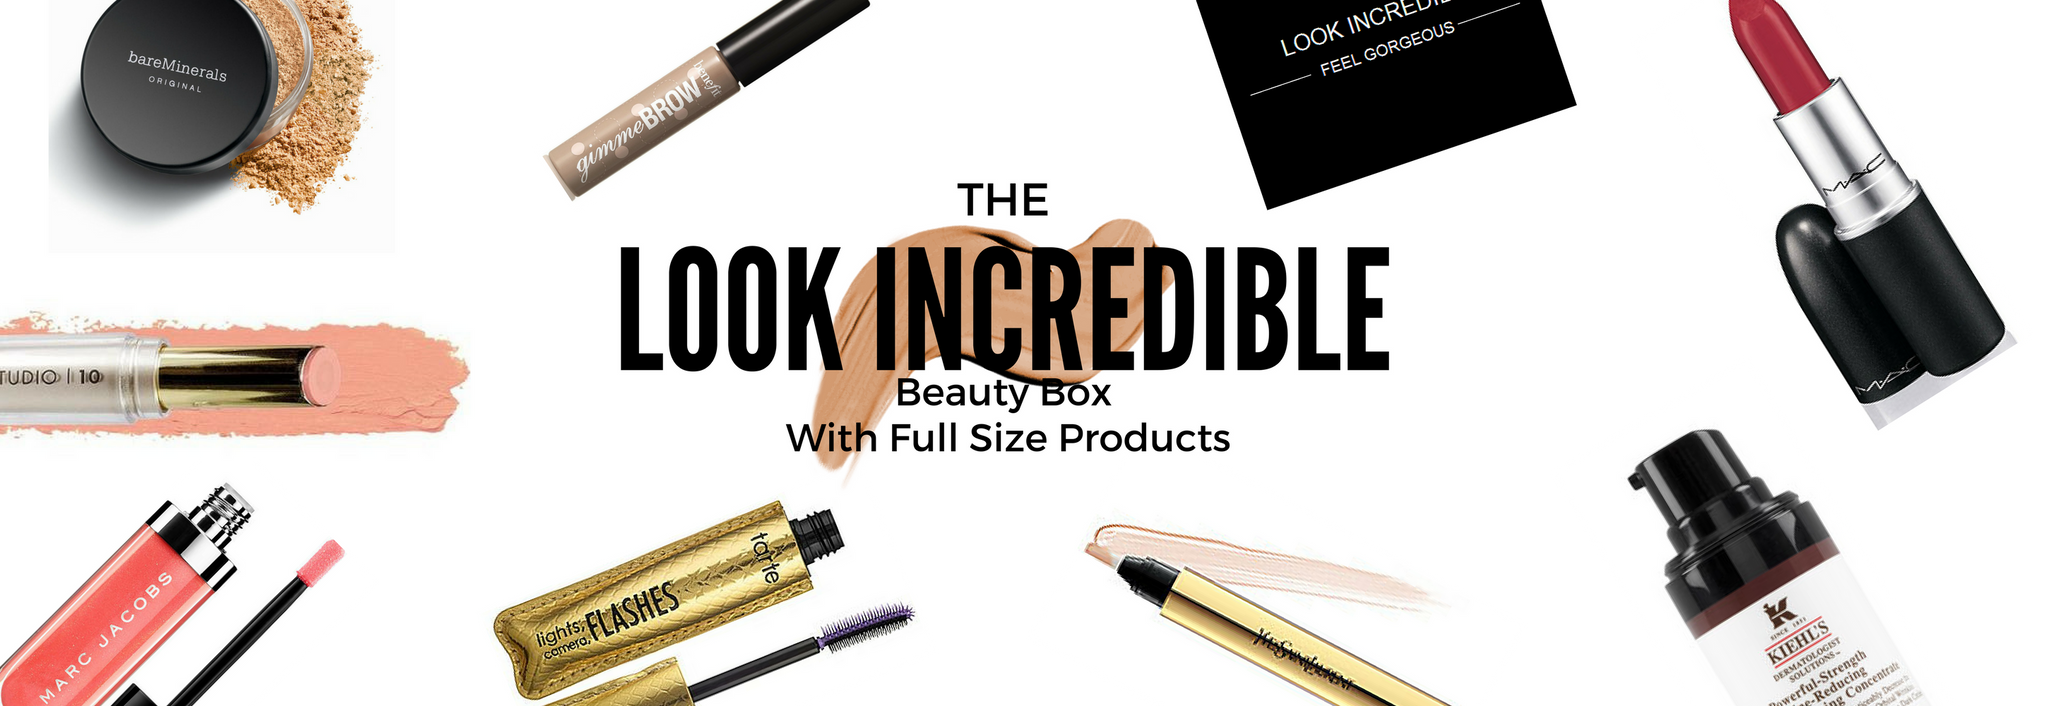 Lookincredible Deluxe Beauty Box